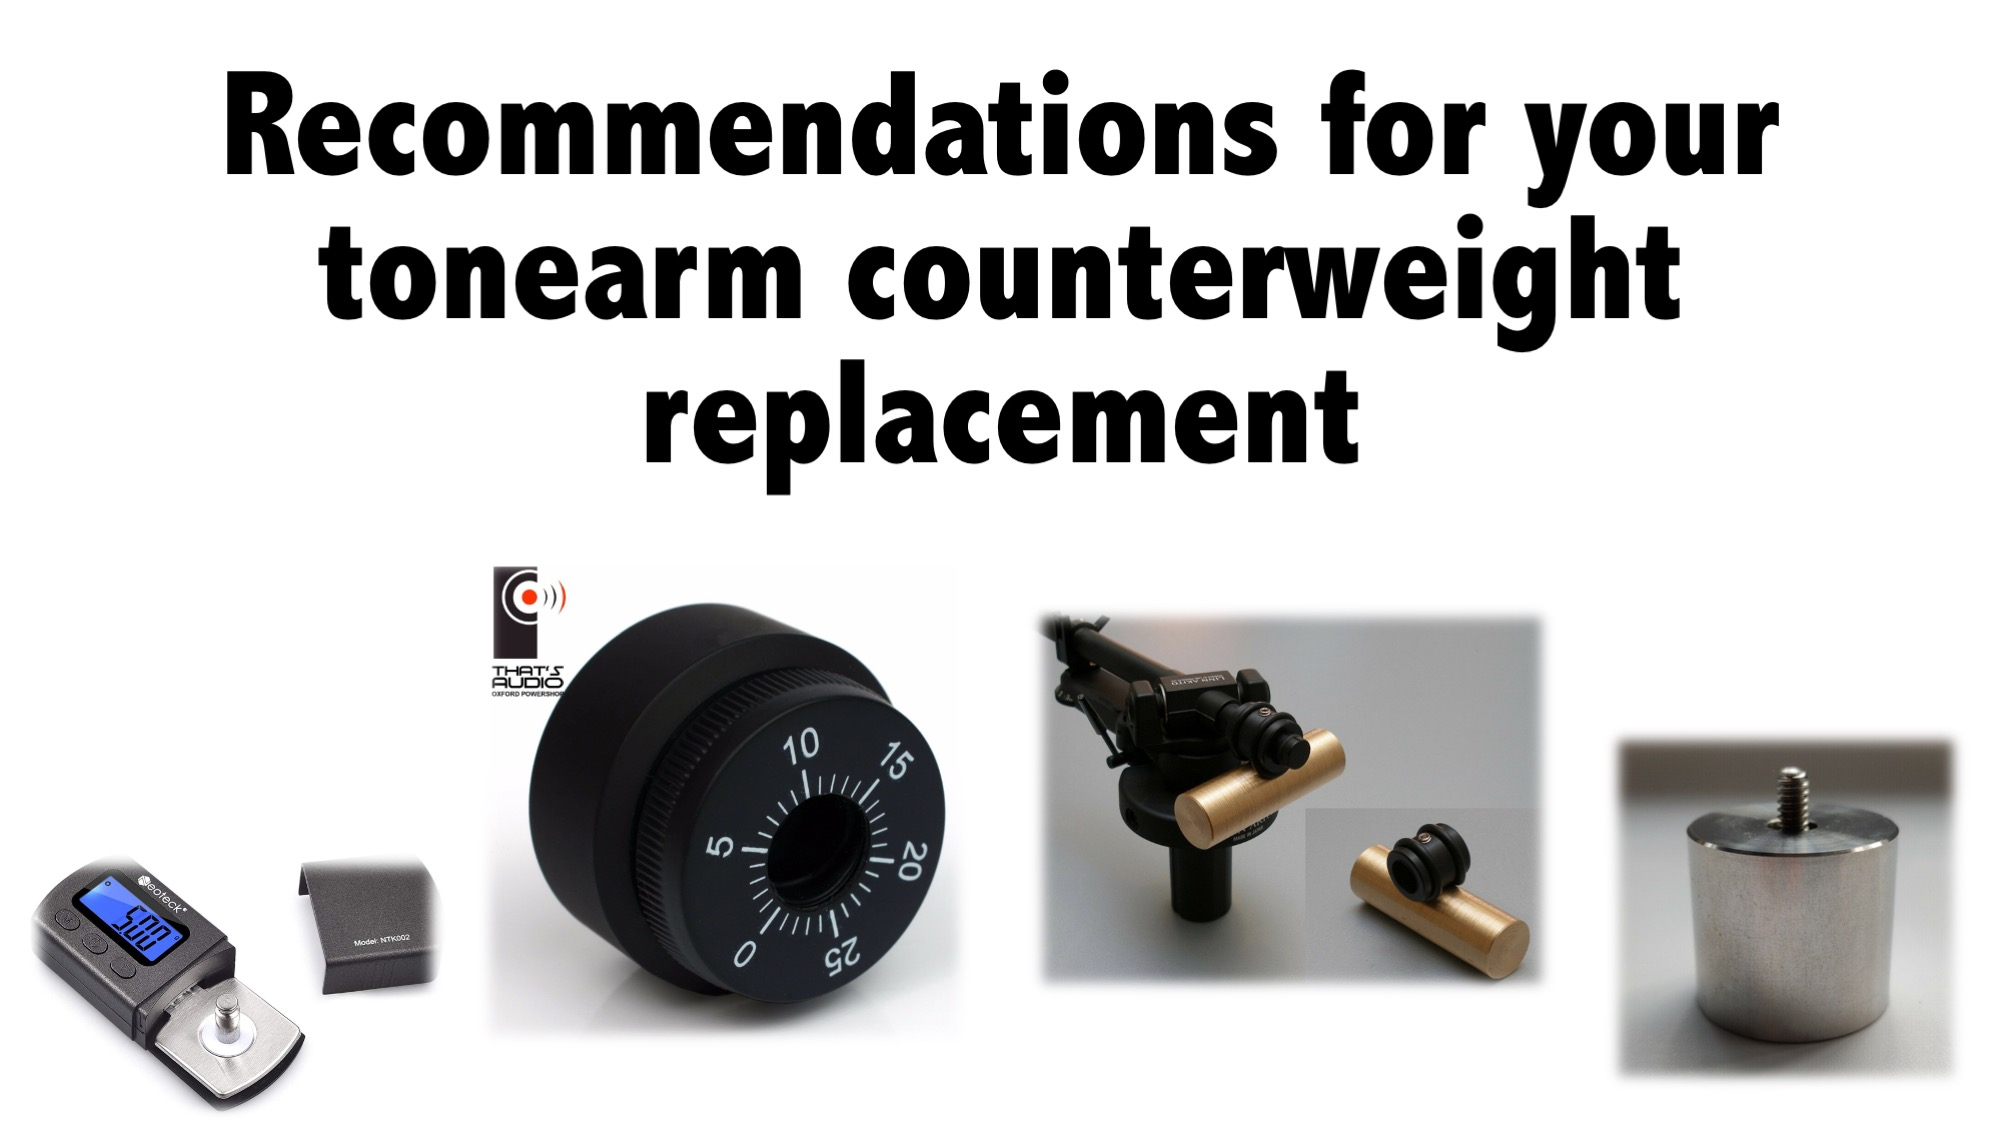 Recommendations for your tonearm counterweight replacement